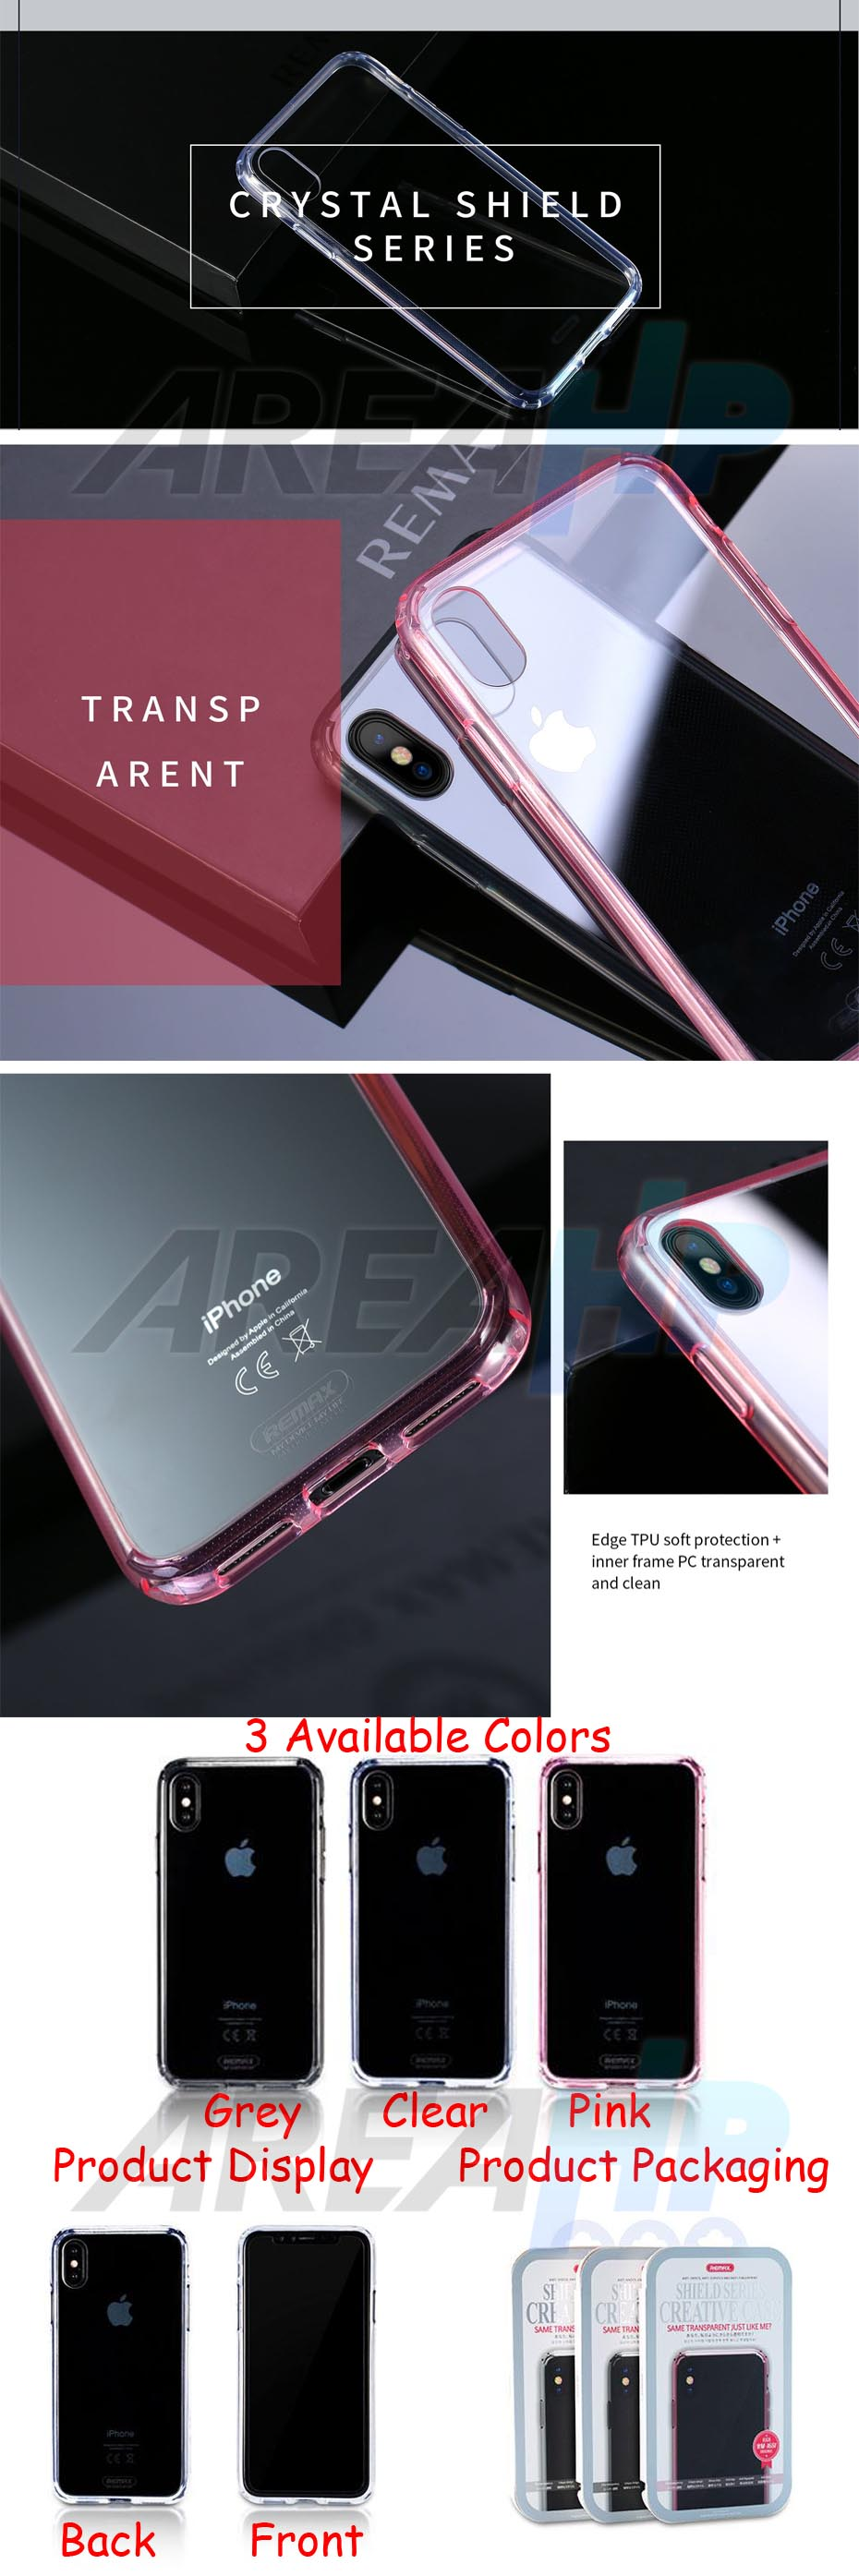 Remax Shield Series Creative Case iPhone X RM-1651 Overview